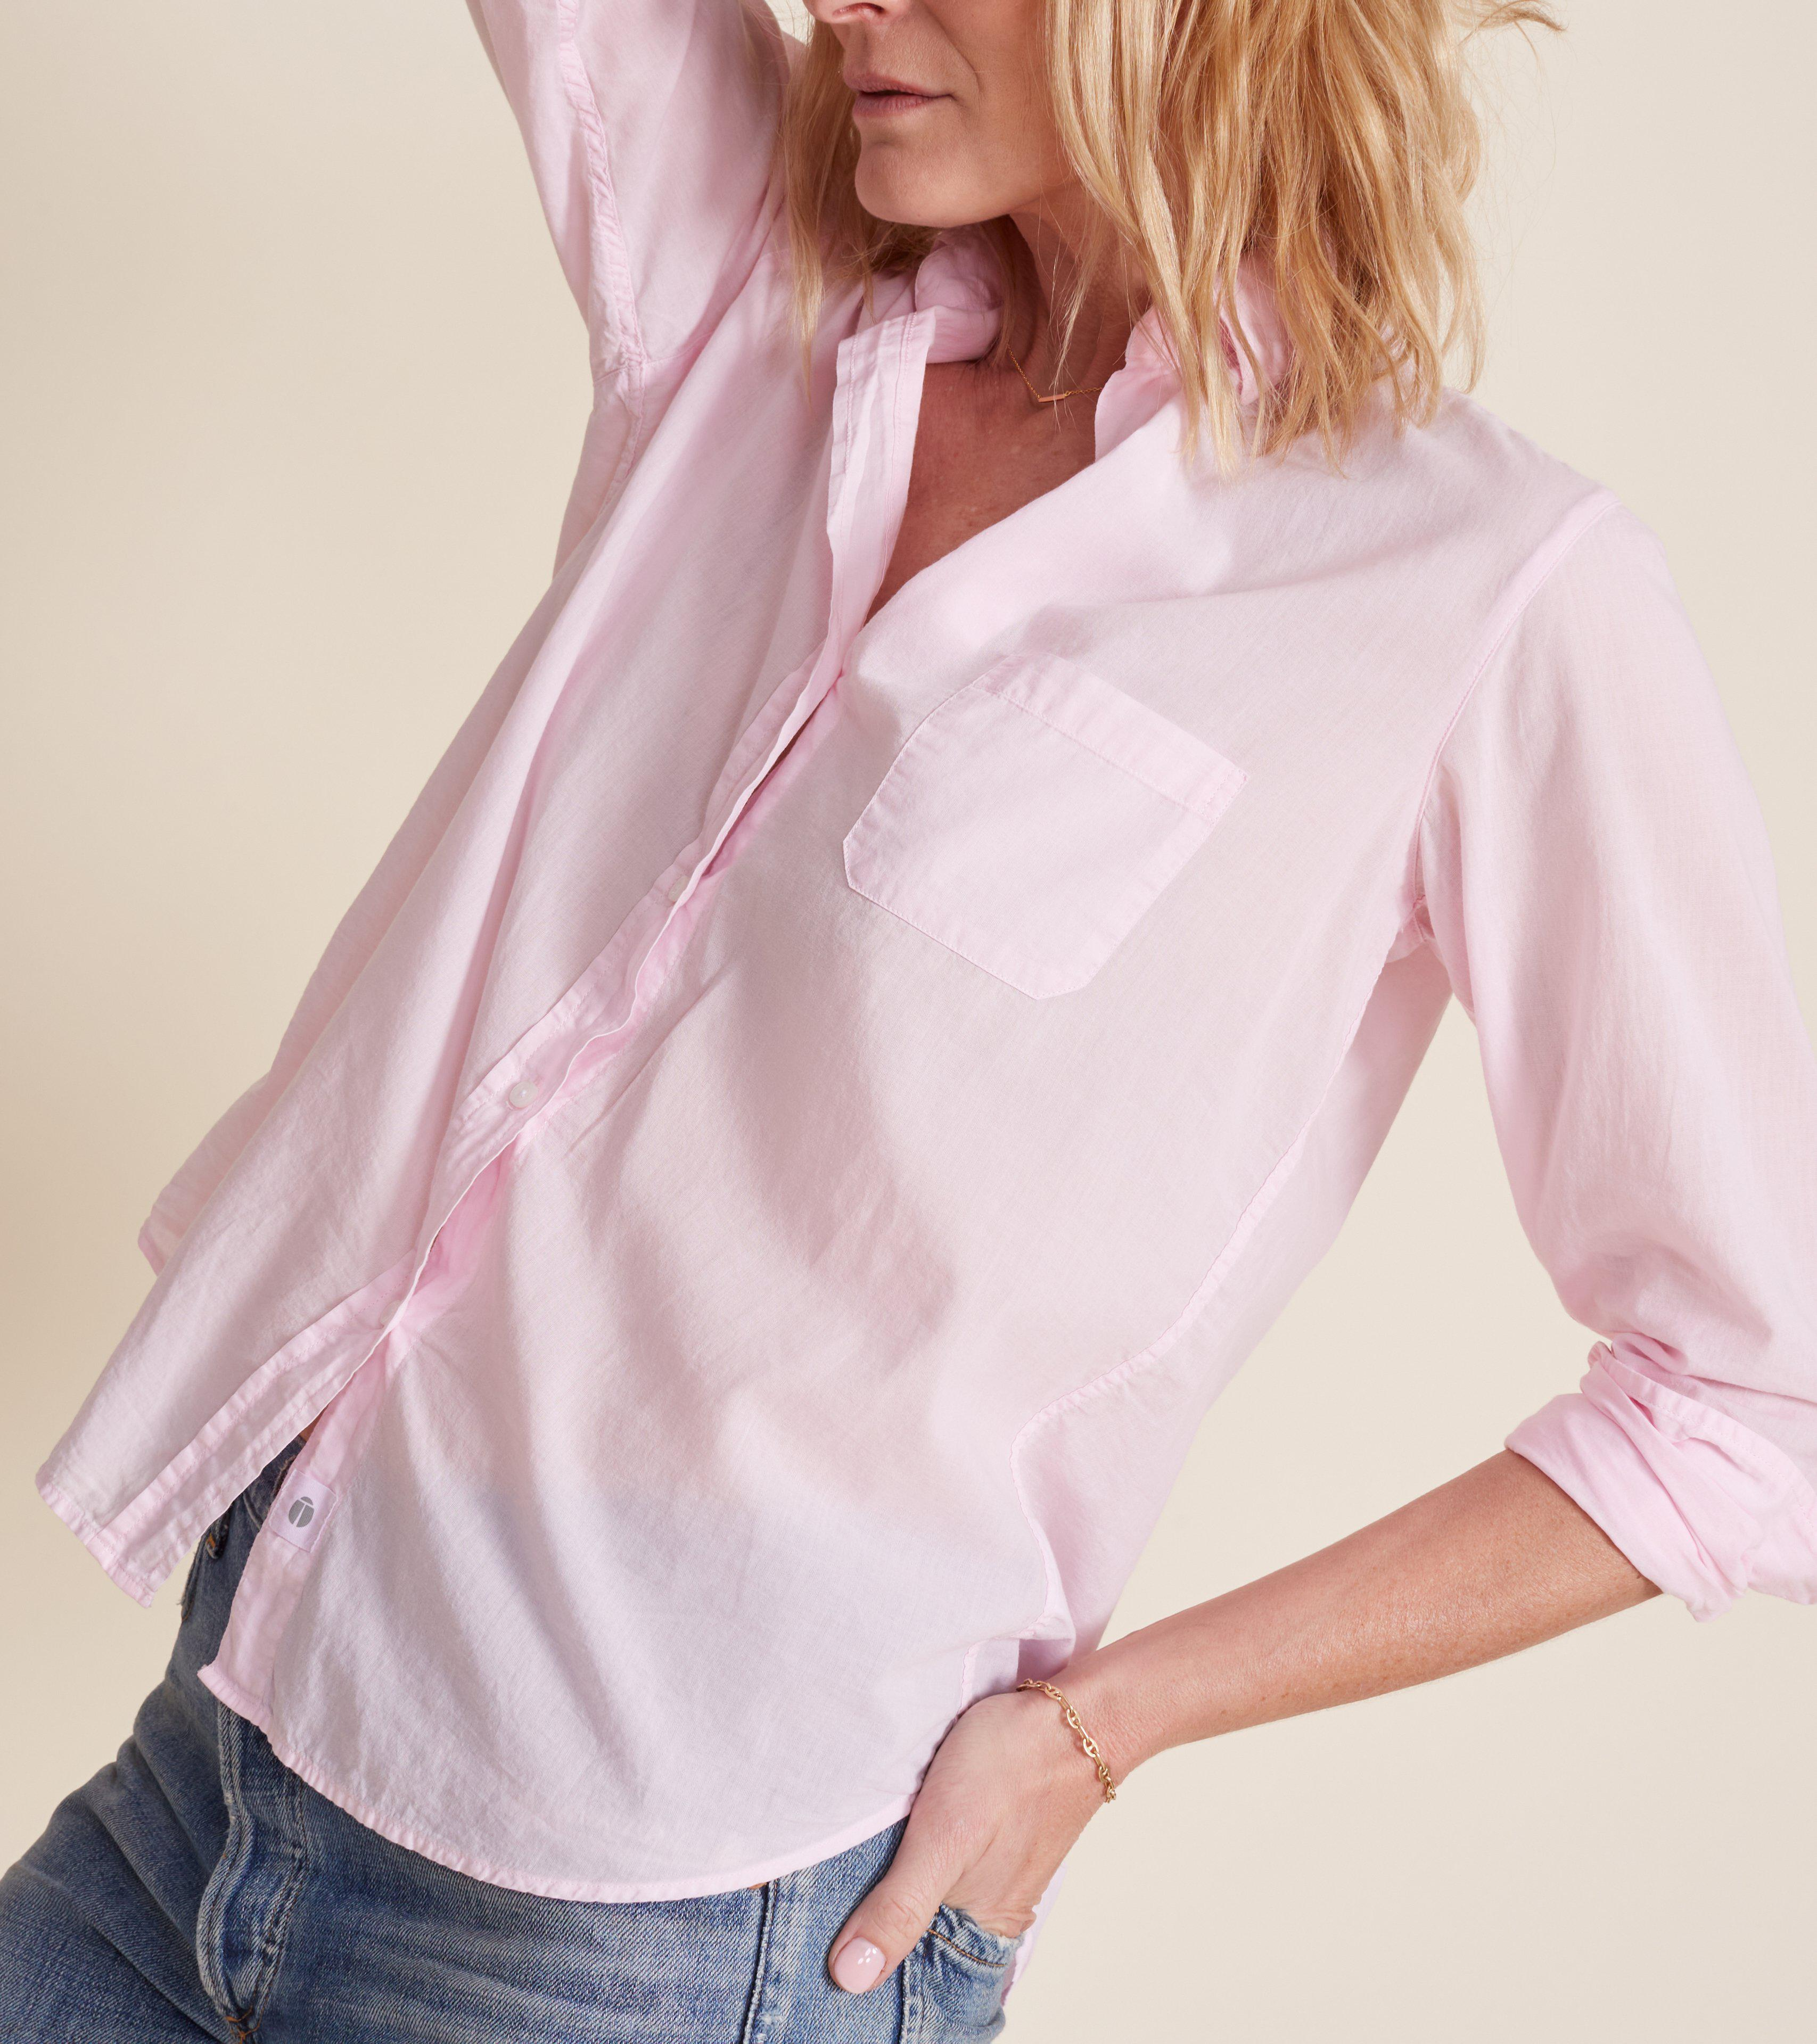 The Hero Soft Pink, Tissue Cotton Final Sale